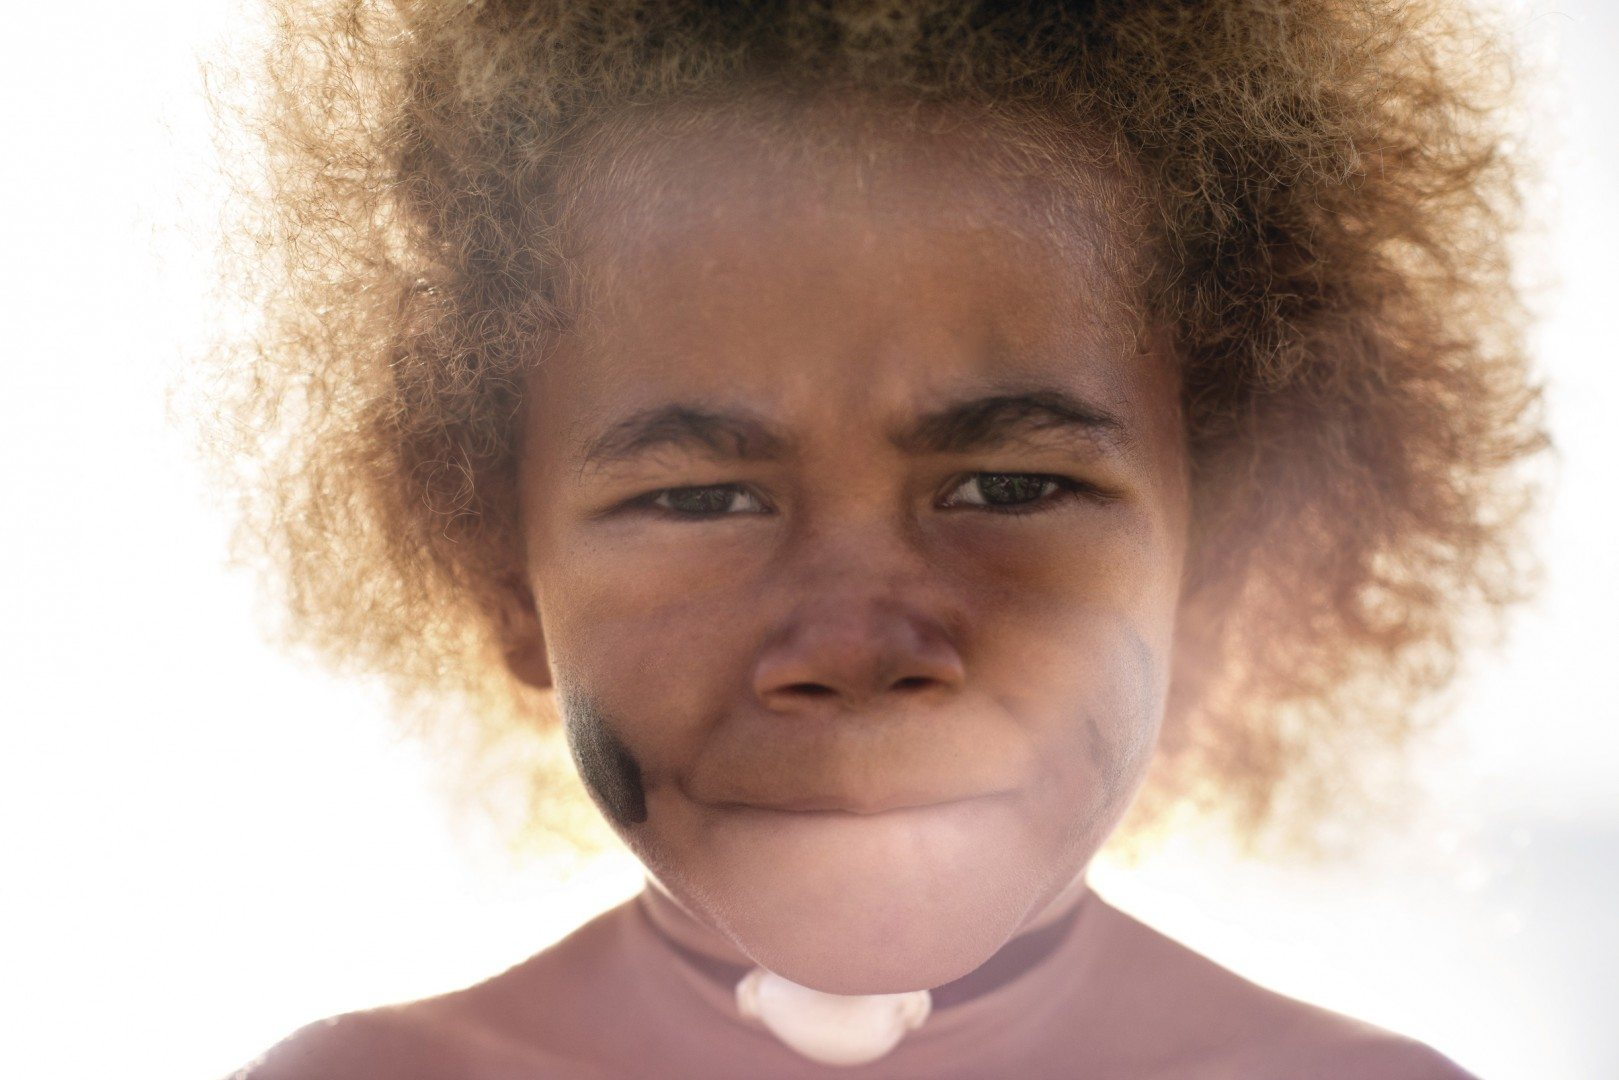 fijian-child